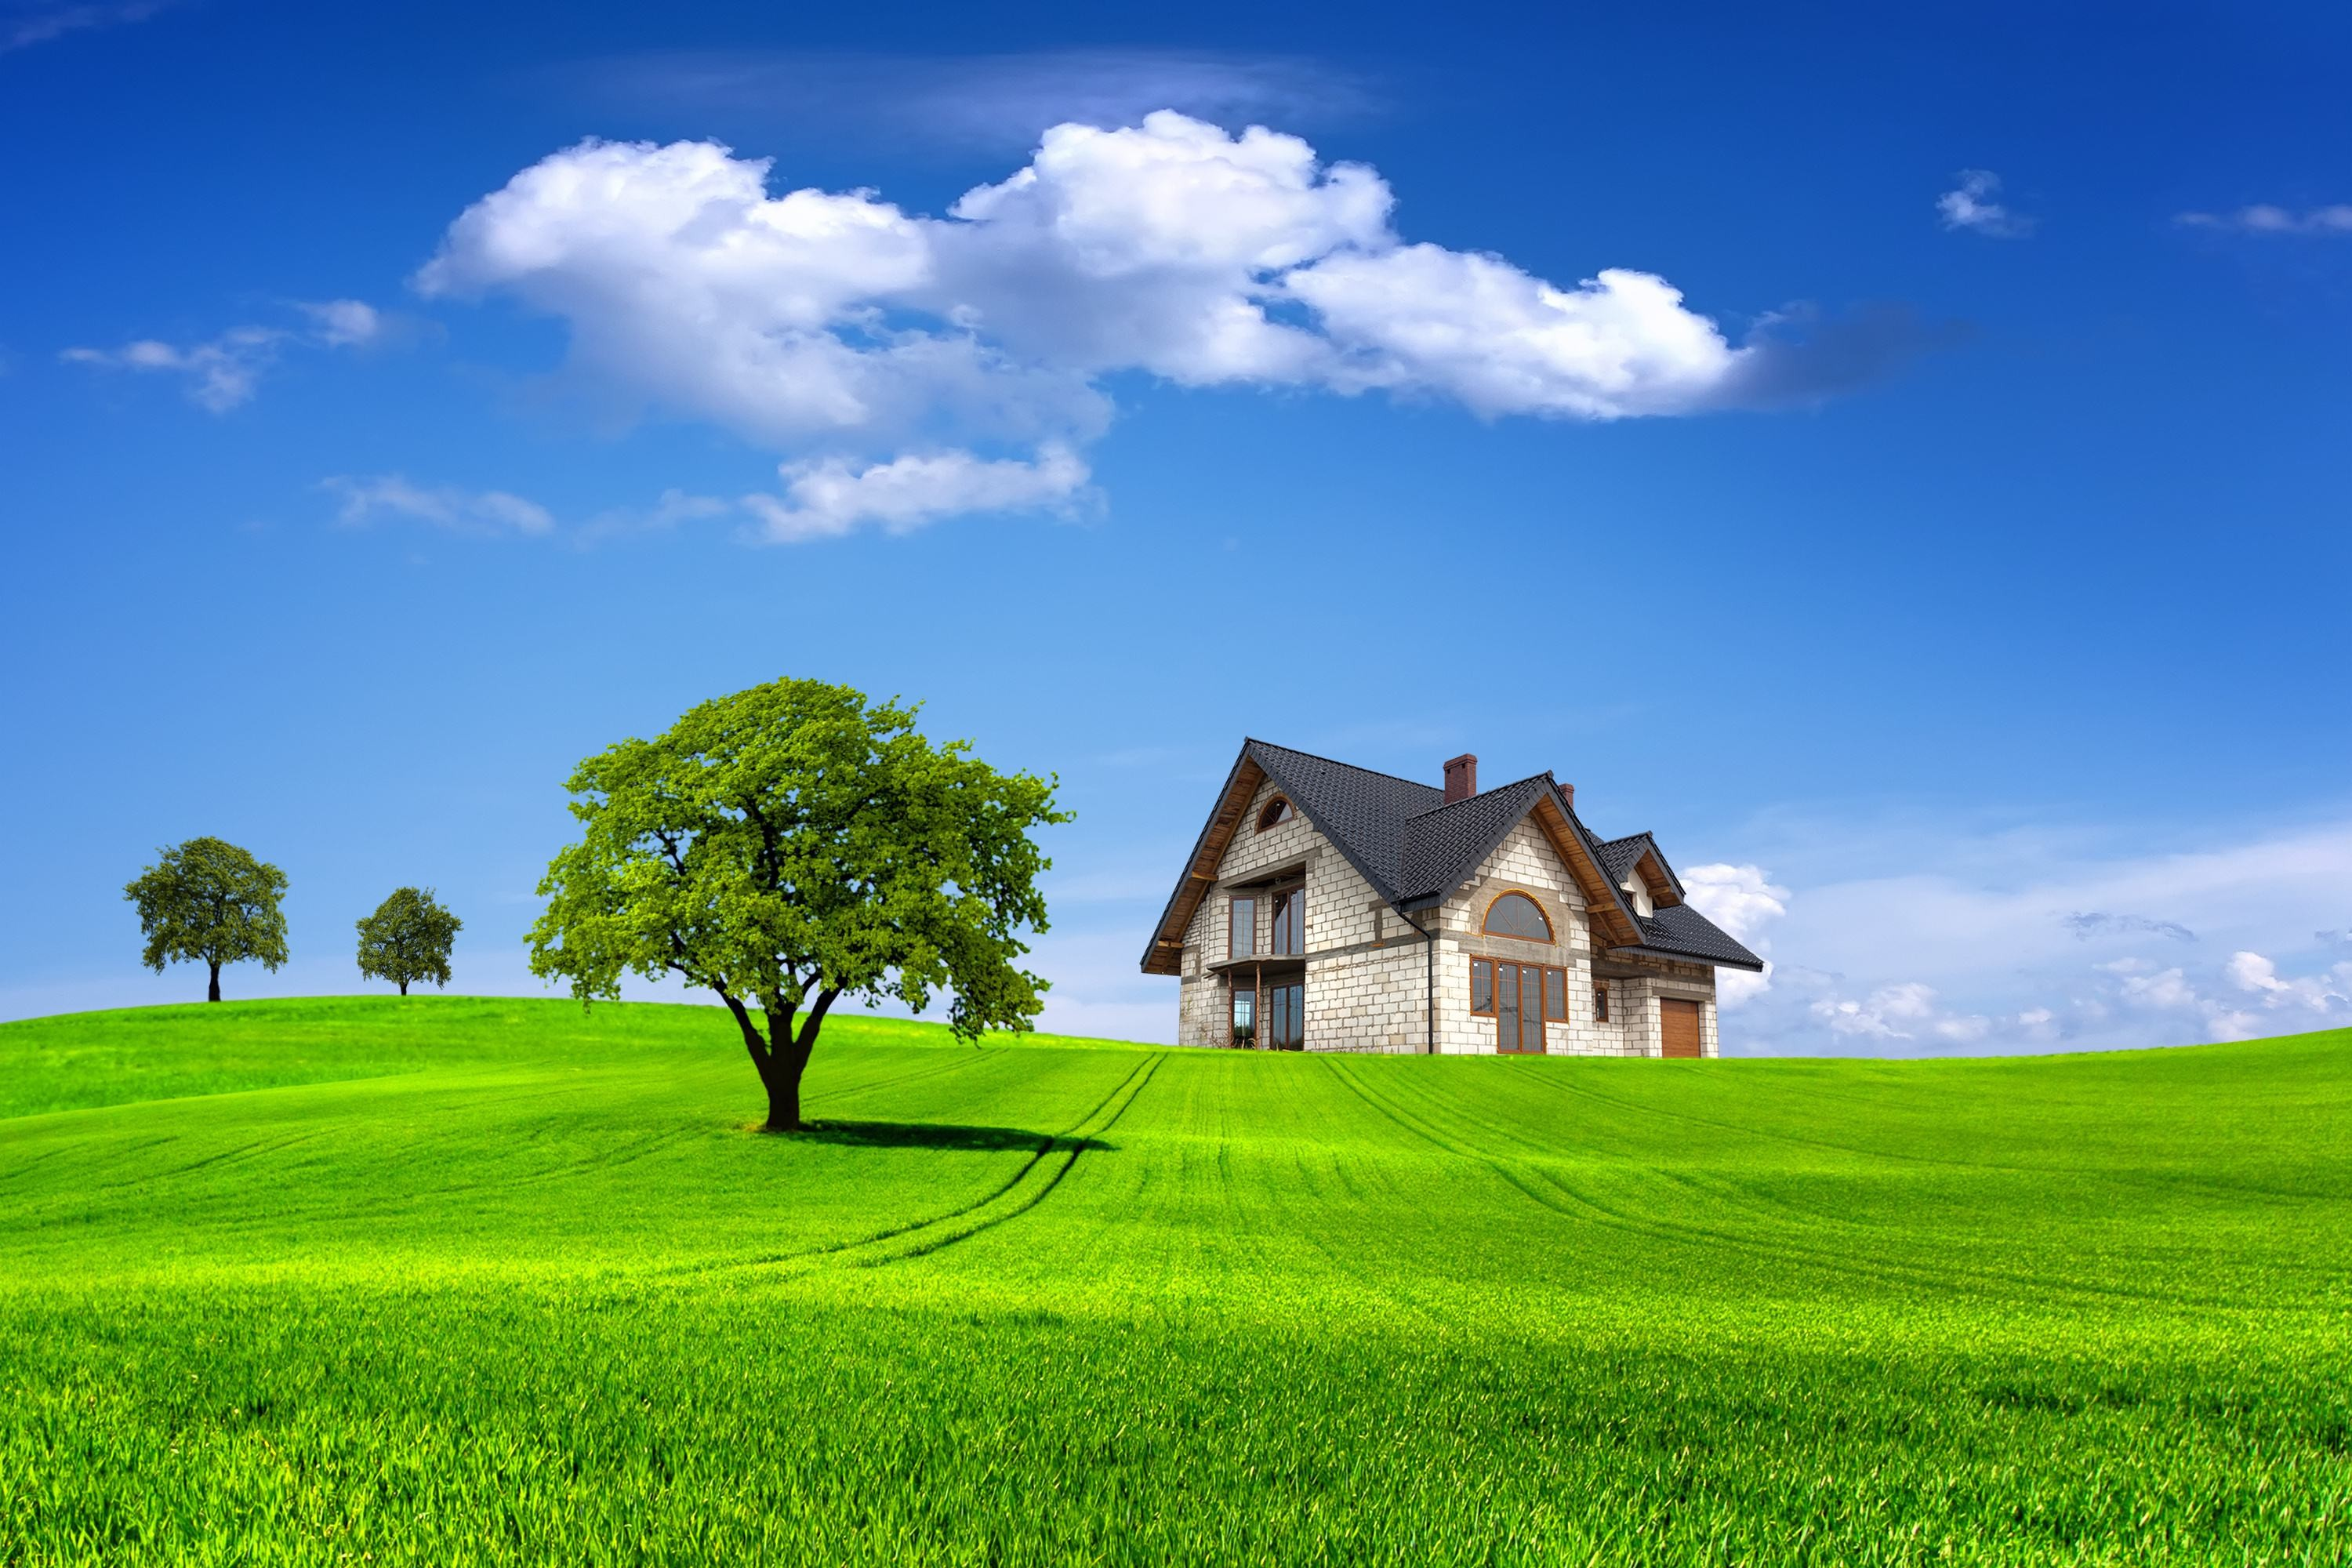 Beautiful nature wallpapers with trees and grass